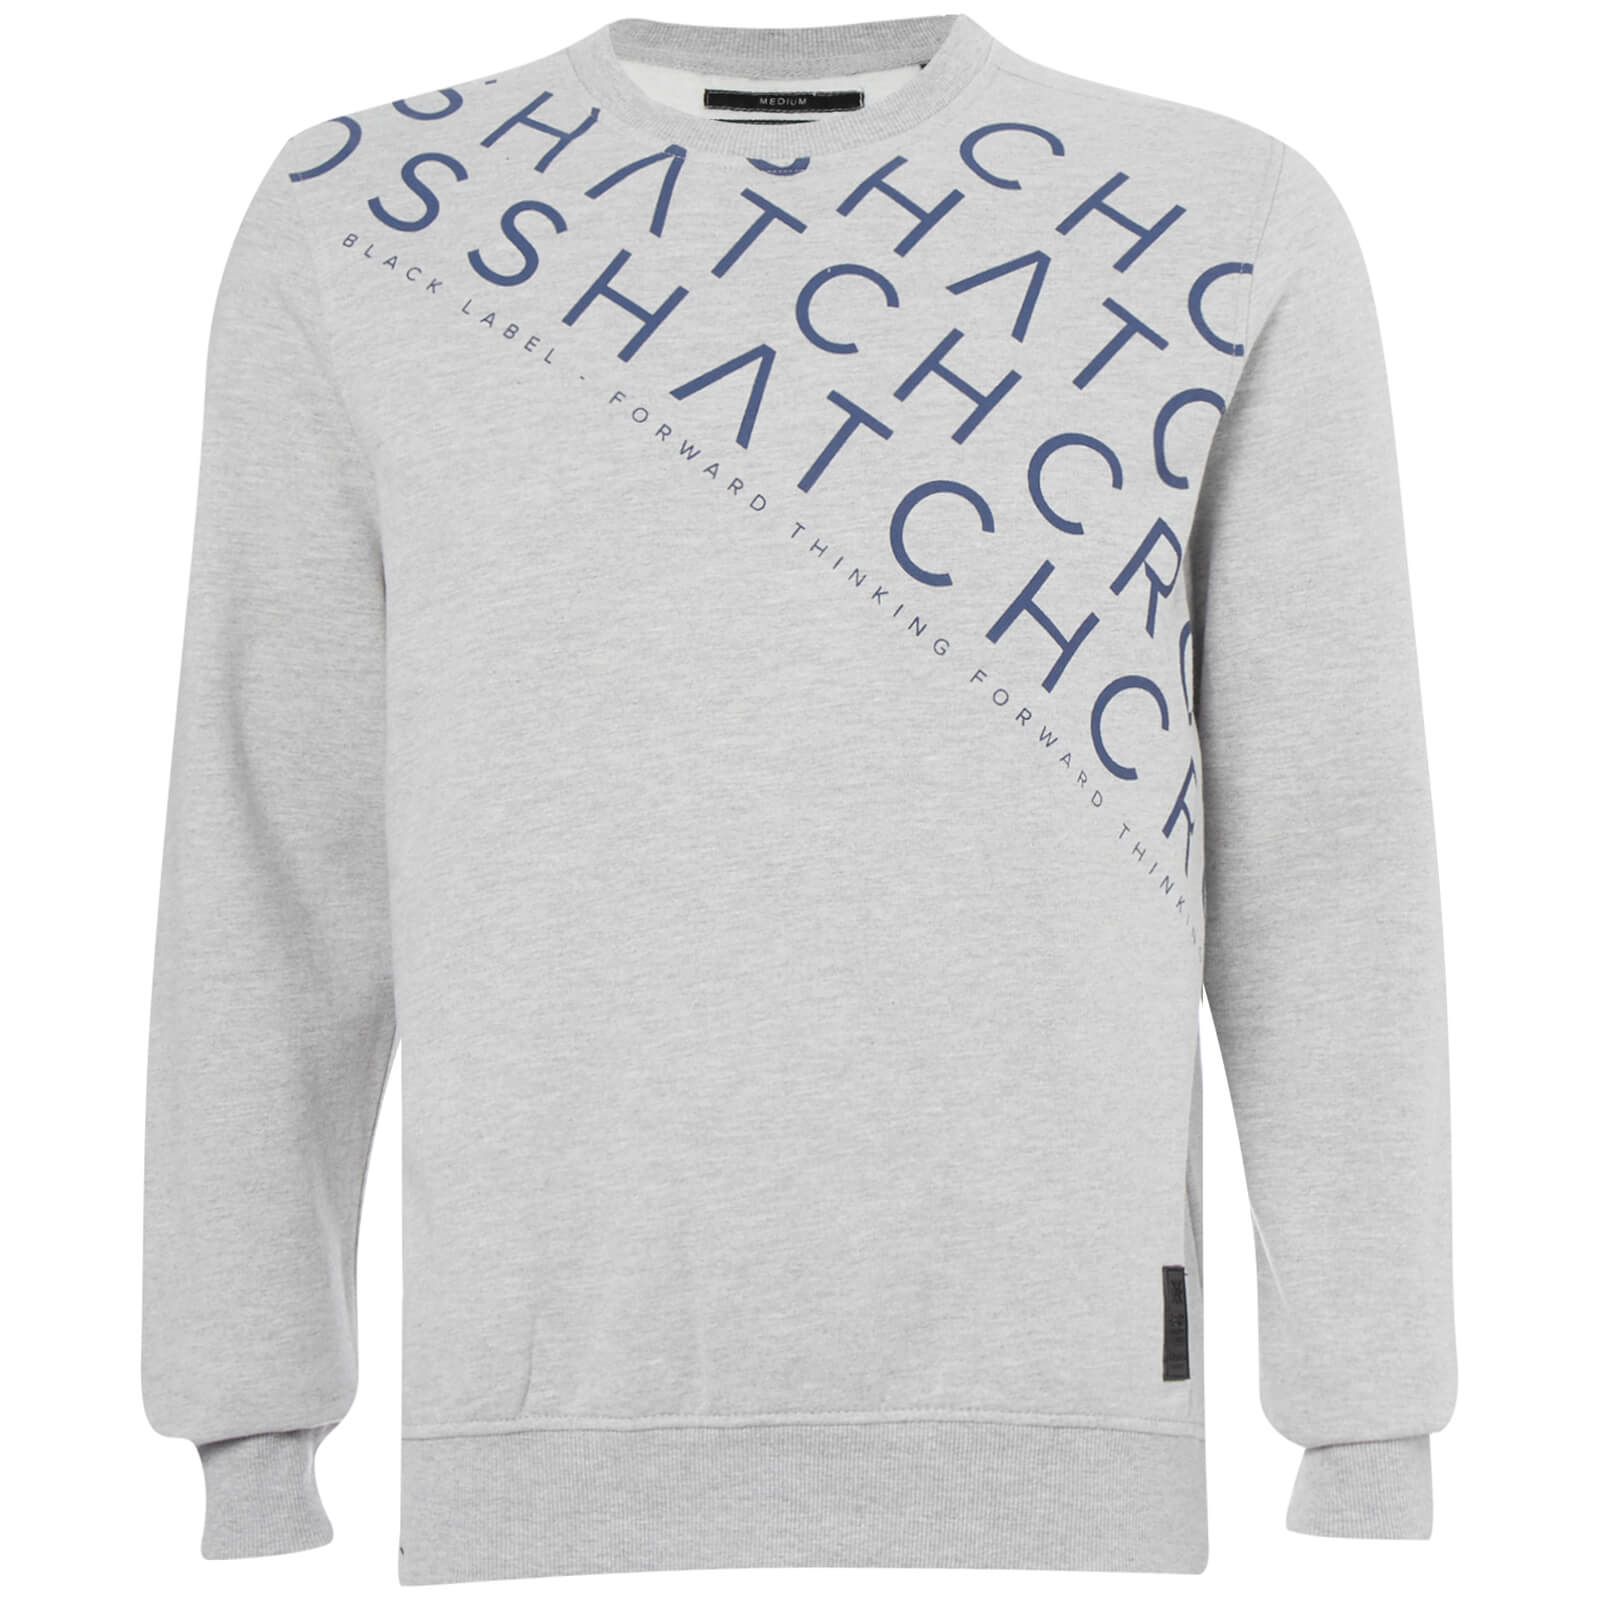 Sweat Homme Leeroy Crew Crosshatch - Gris Clair Chiné